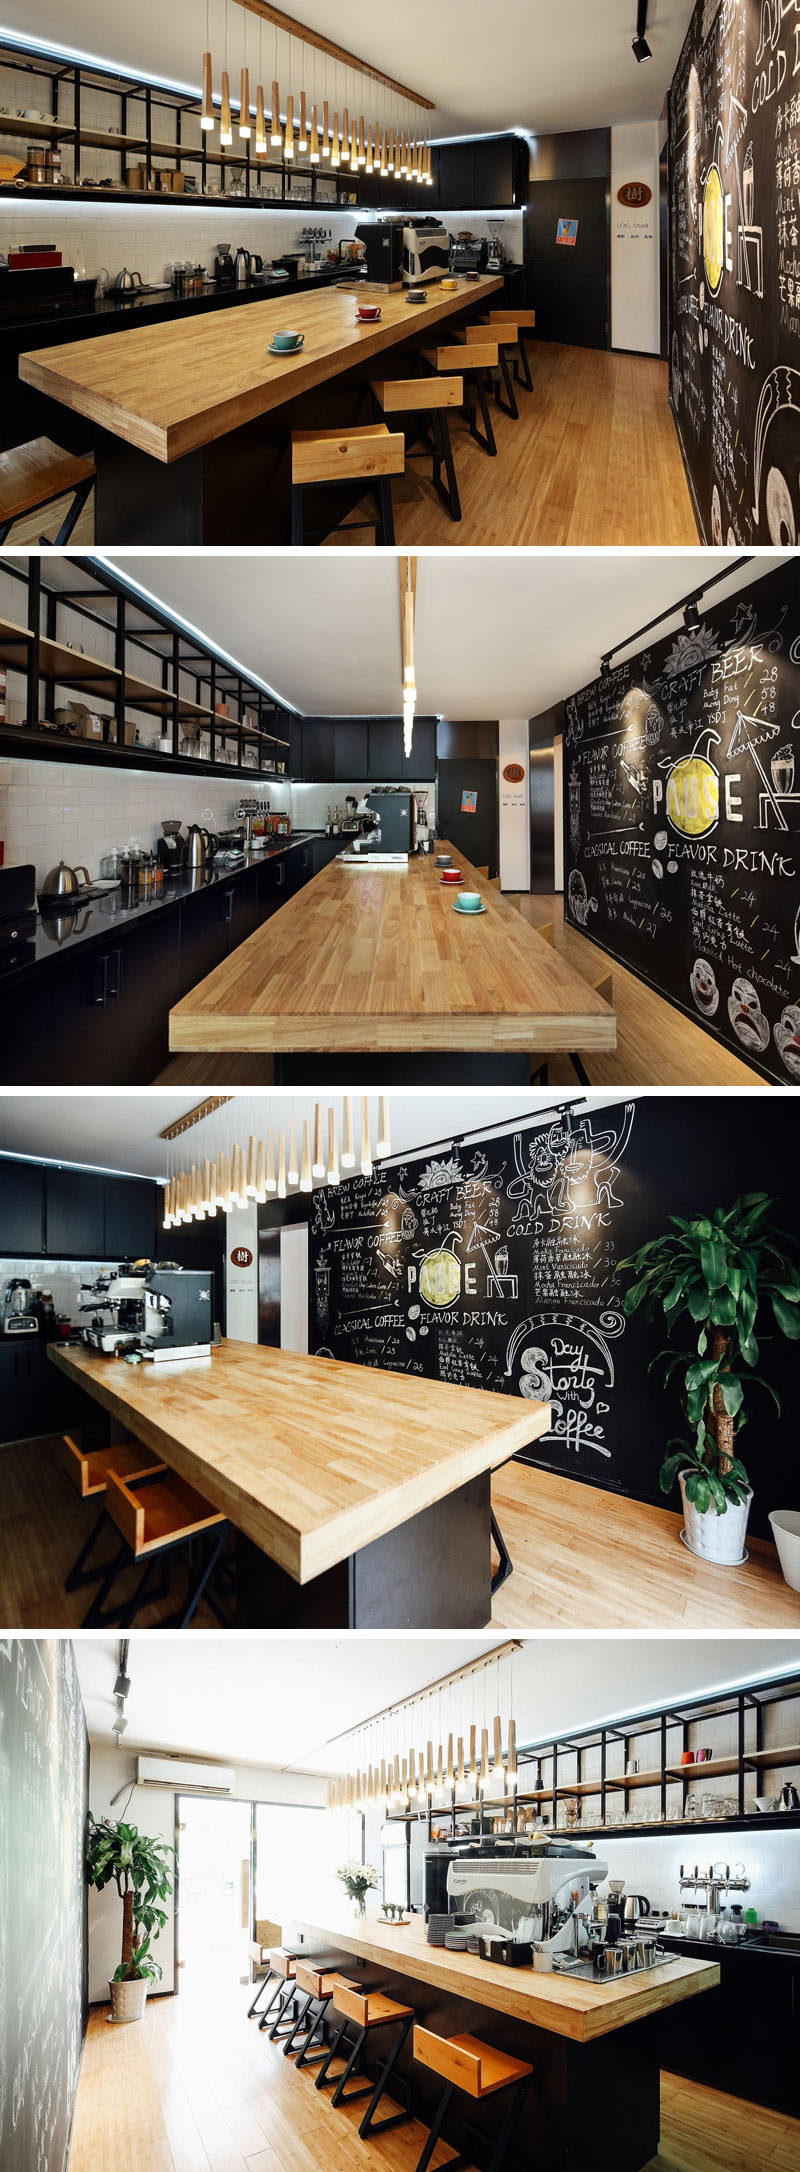 This New Coffee Shop Was Inserted In An Older Apartment ...